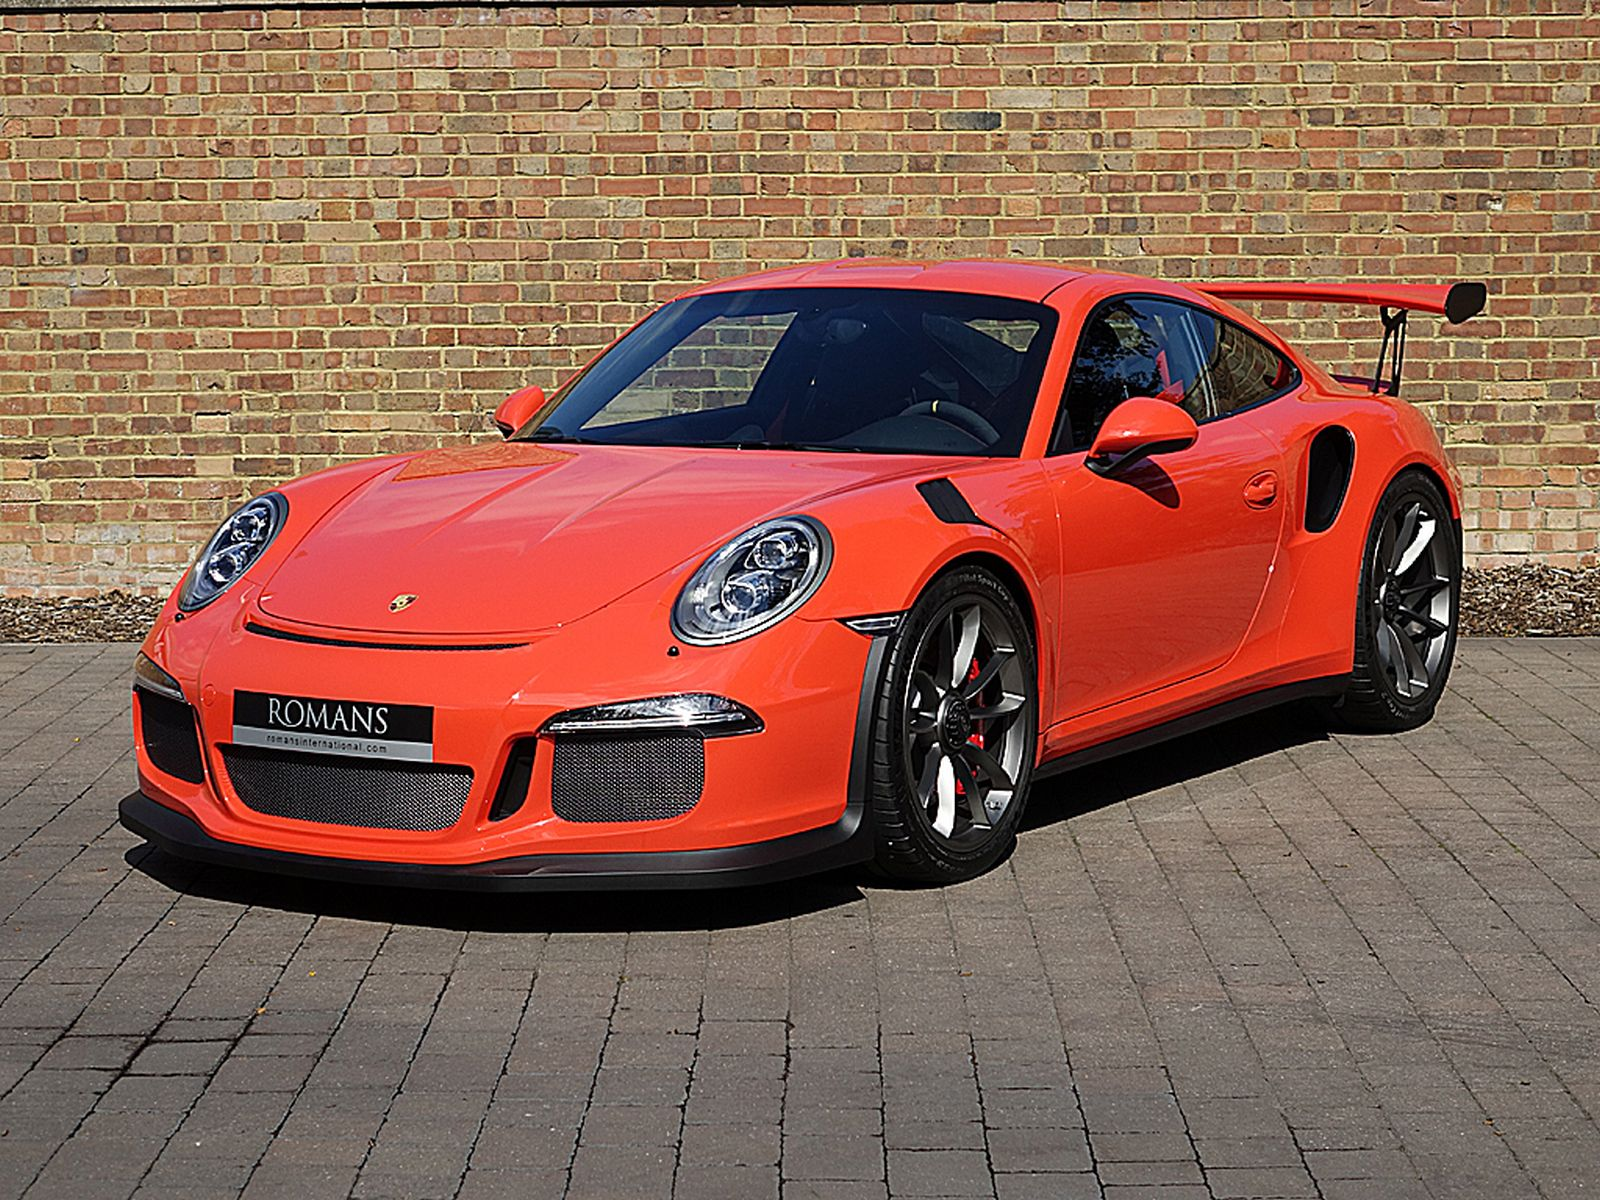 Used 2016 Porsche 911 GT3 RS For Sale in the UK , GTspirit